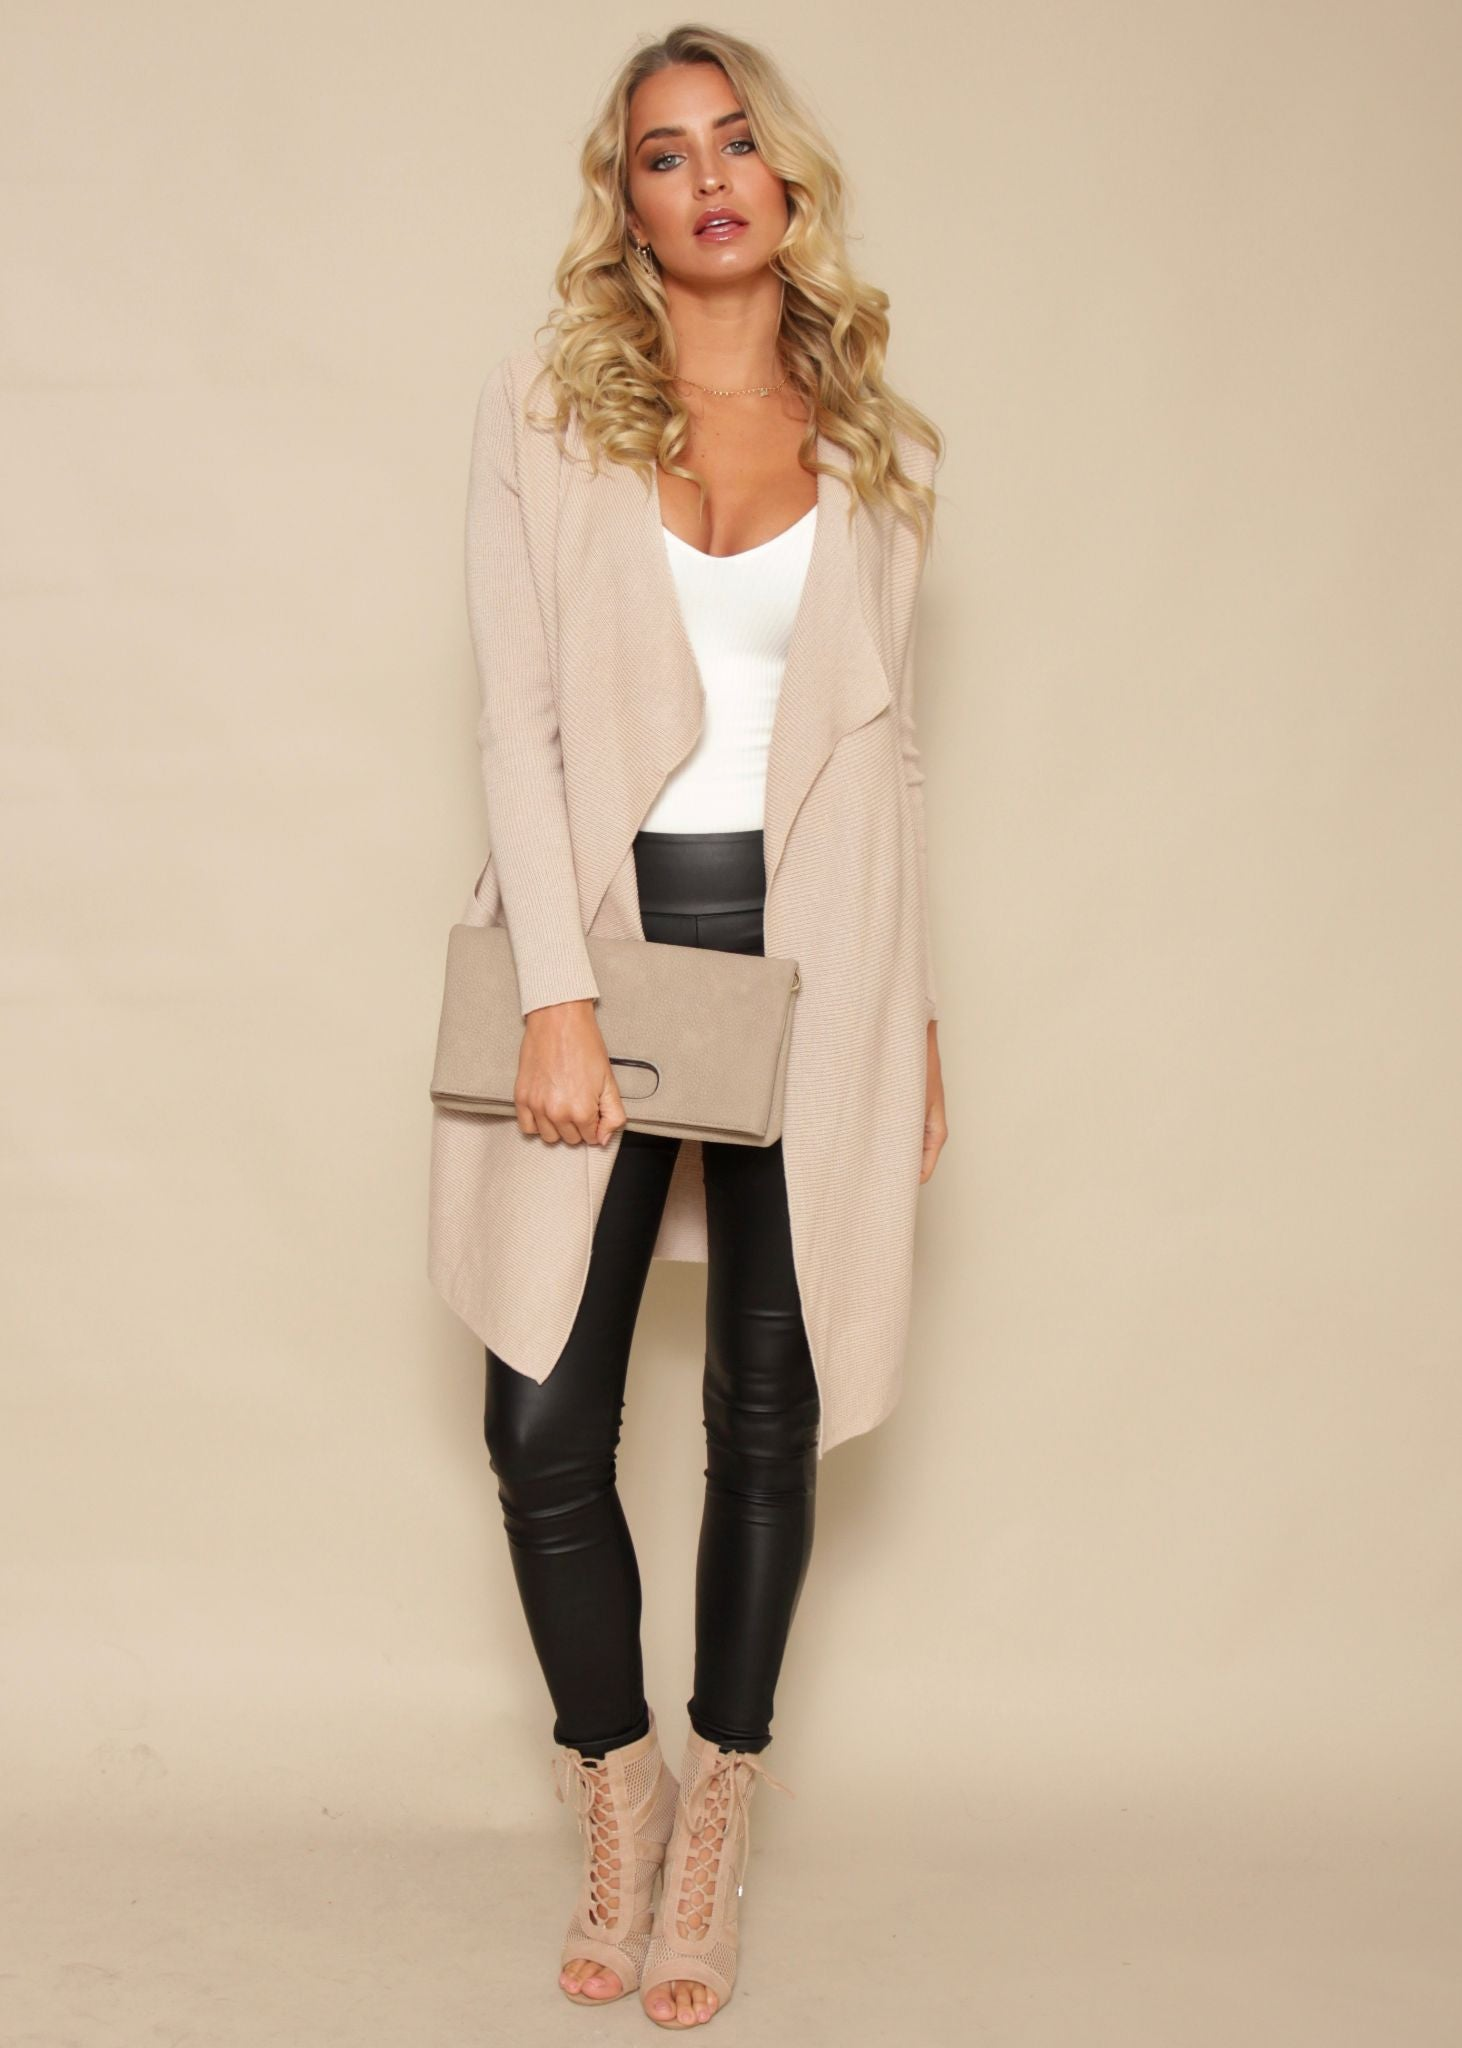 Close Encounters Knit Cardigan - Blush